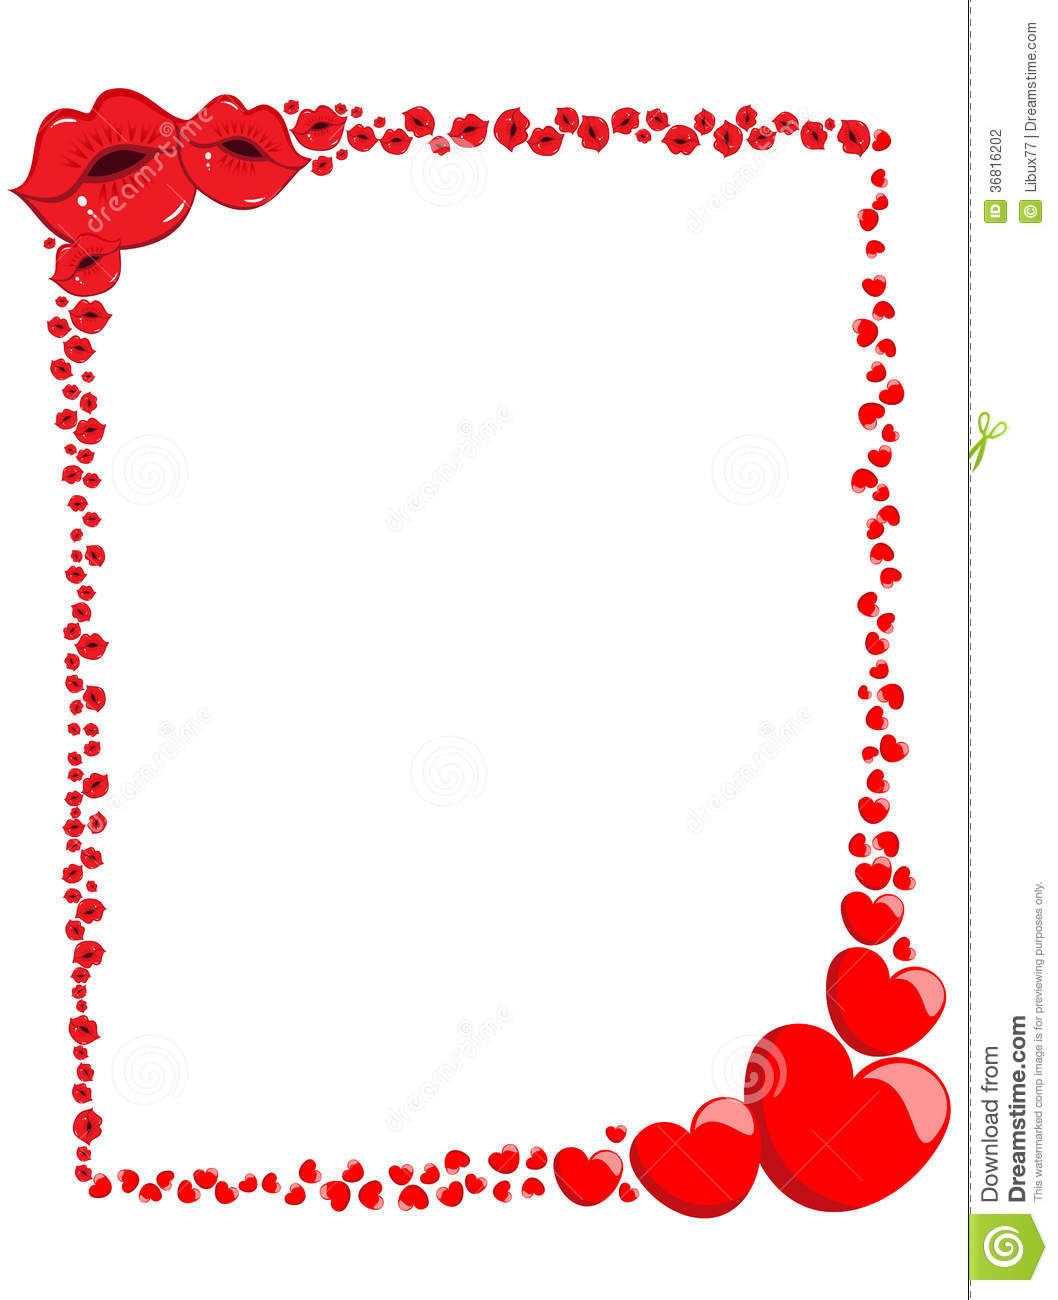 Decorative Valentine Love Frame Or Border Stock Photography - Image ...